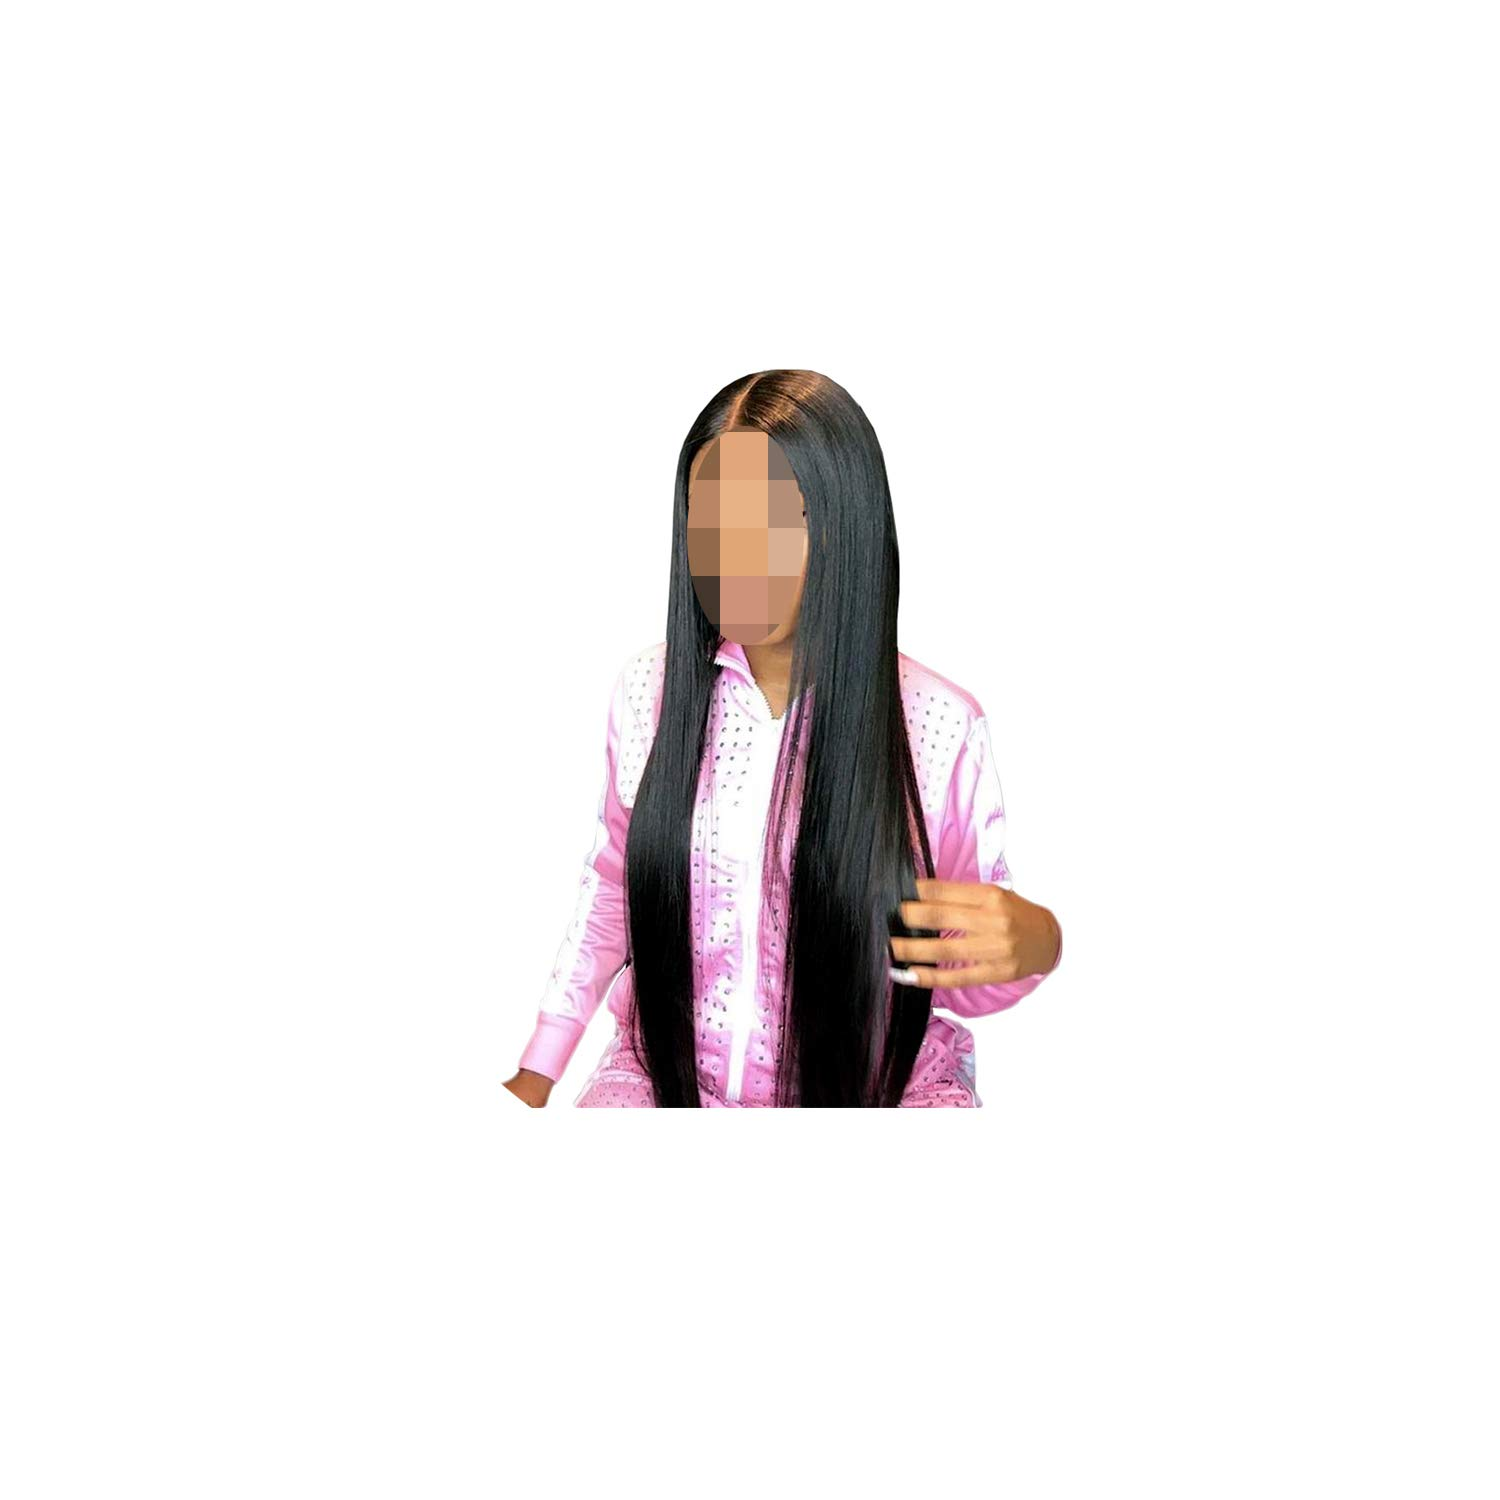 13x6 Lace Front Wig Remy Glueless Lace Front Human Hair Wigs Pre Plucked Brazilian Straight Lace Wig With Baby Hair,Natural Color,22inches,180 Density 13x4 Wig